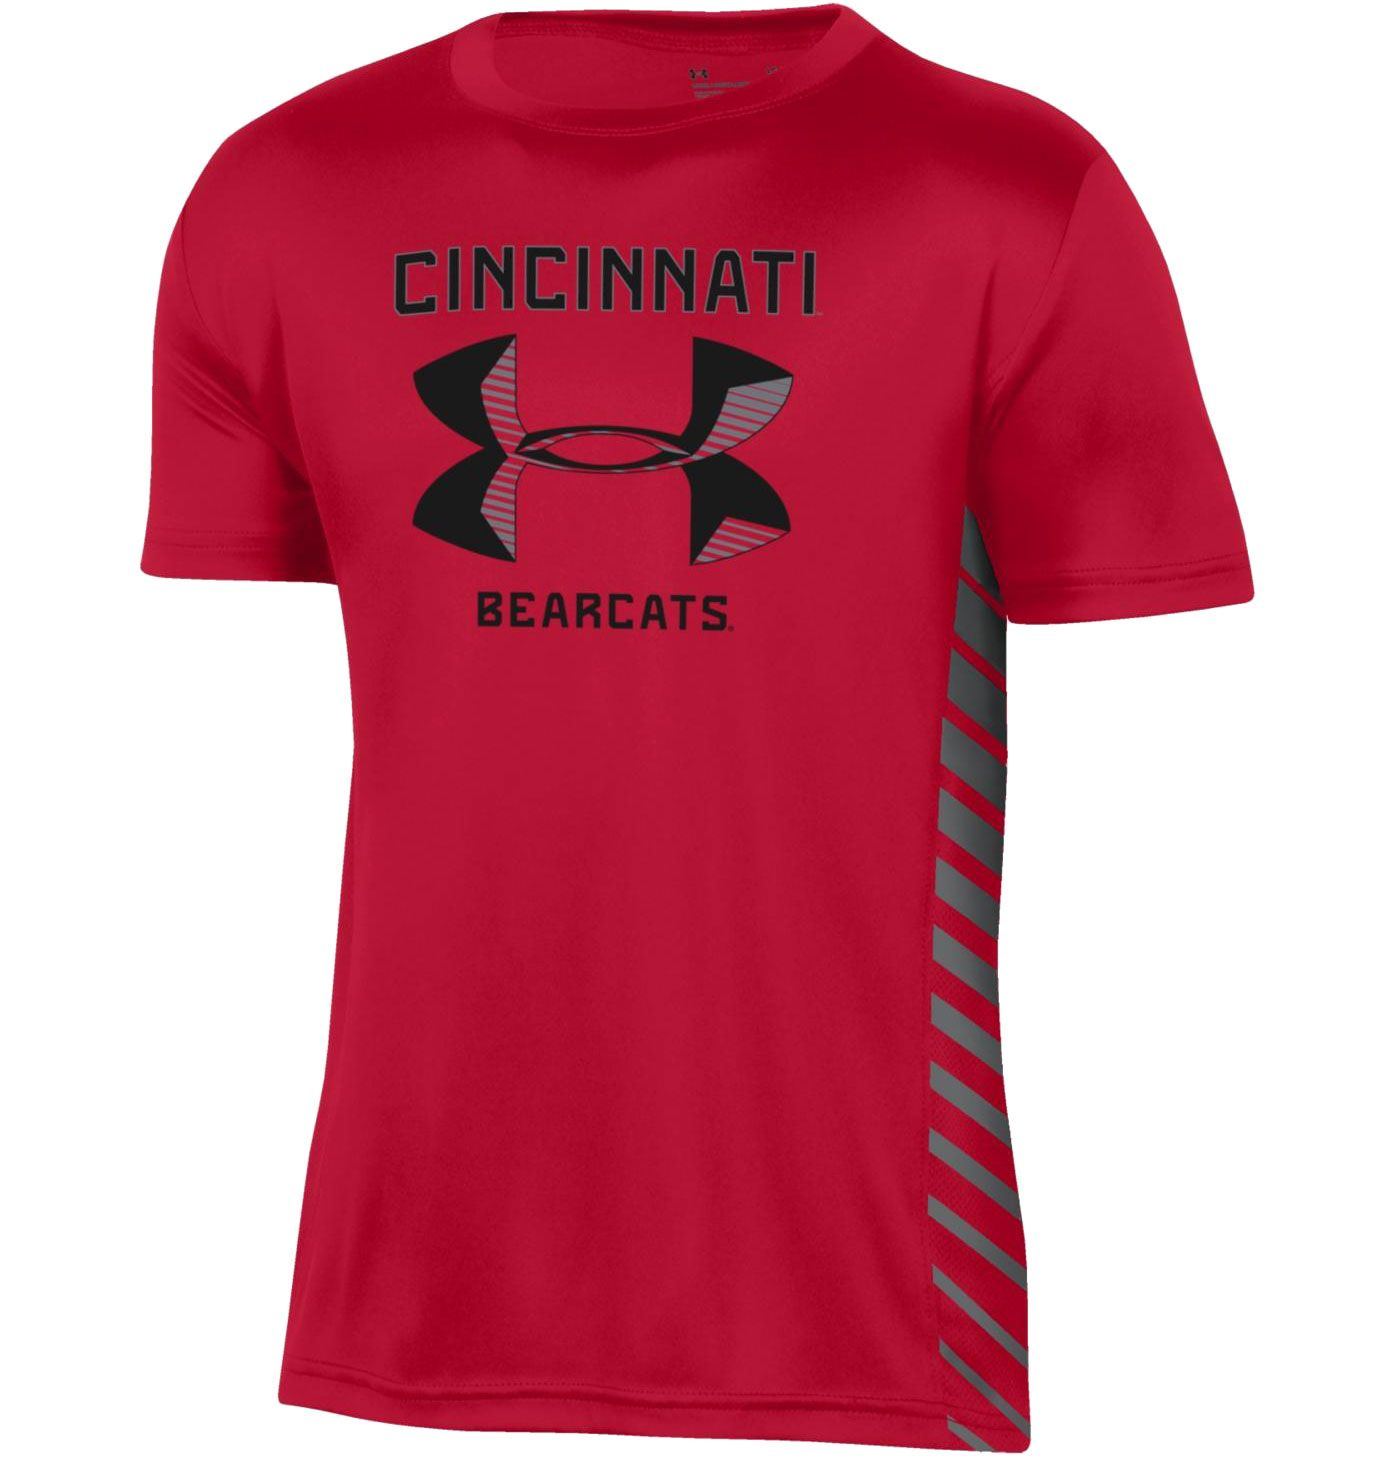 Under Armour Youth Cincinnati Bearcats Red Performance Novelty T-Shirt